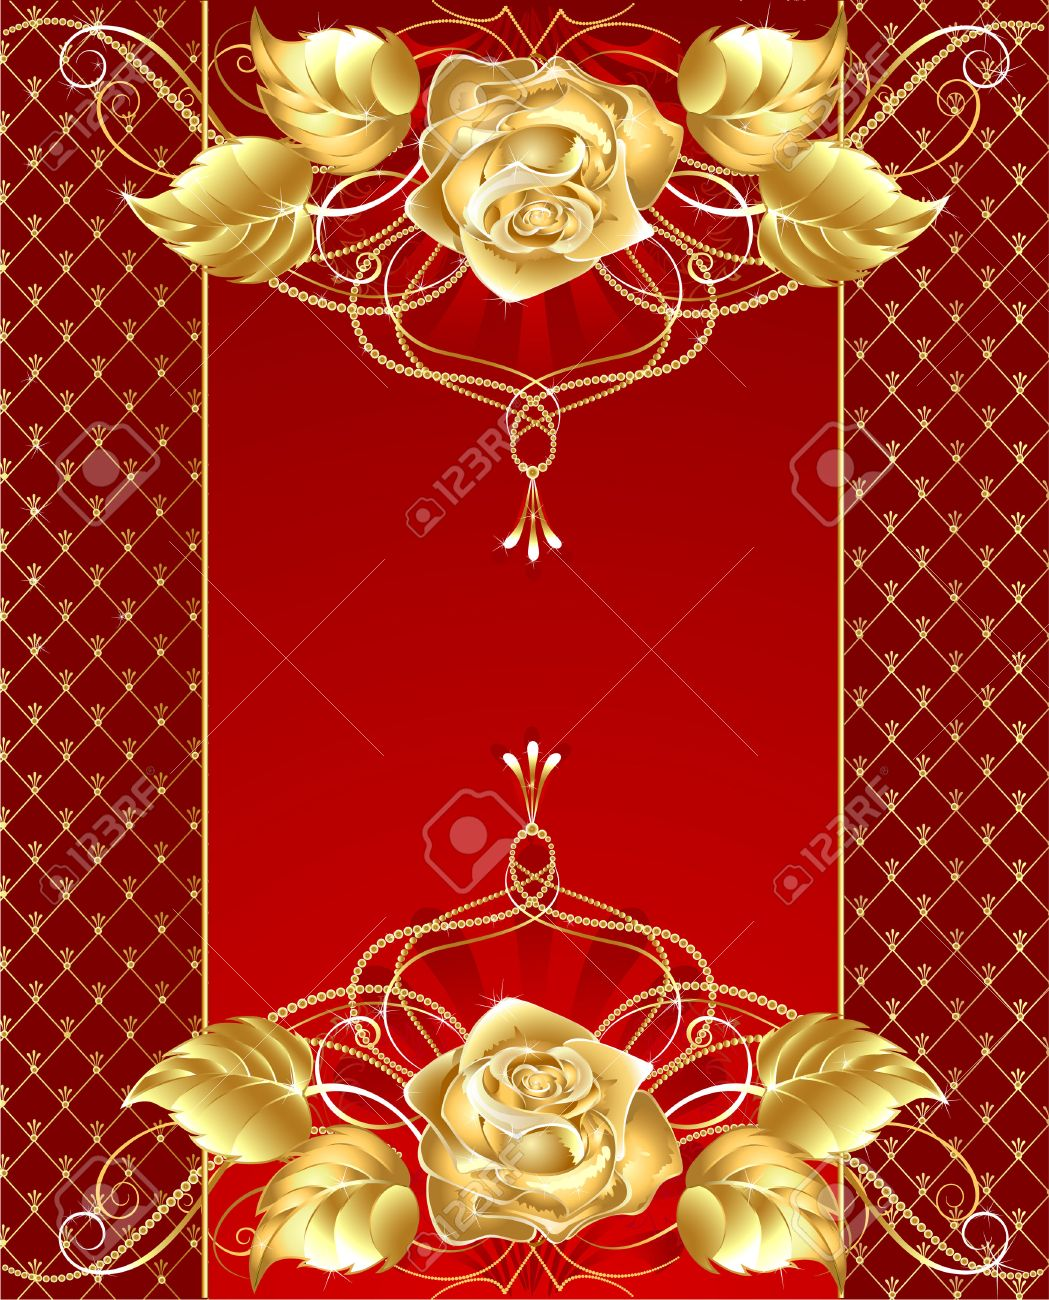 Red Background With Gold Jewelry Rose Brilliant And Delicate